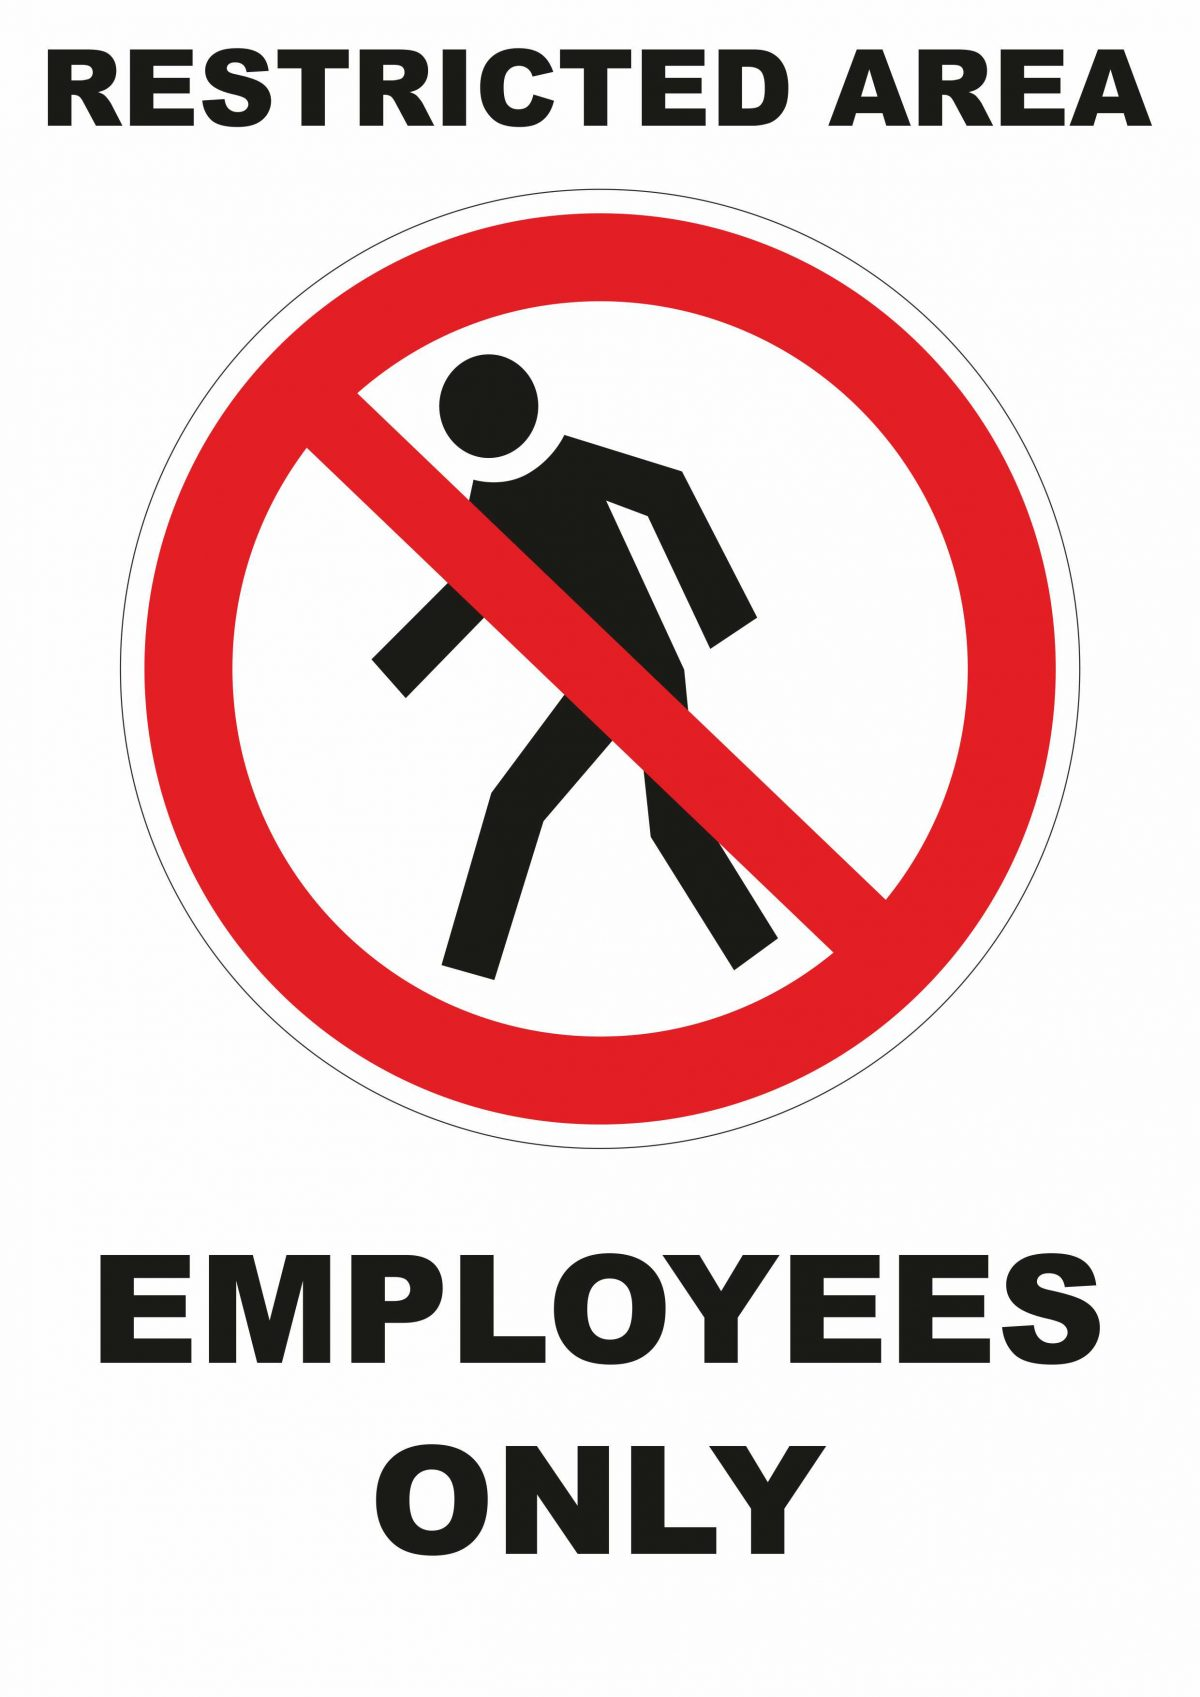 Restricted Area Employees Only with Graphic Sign